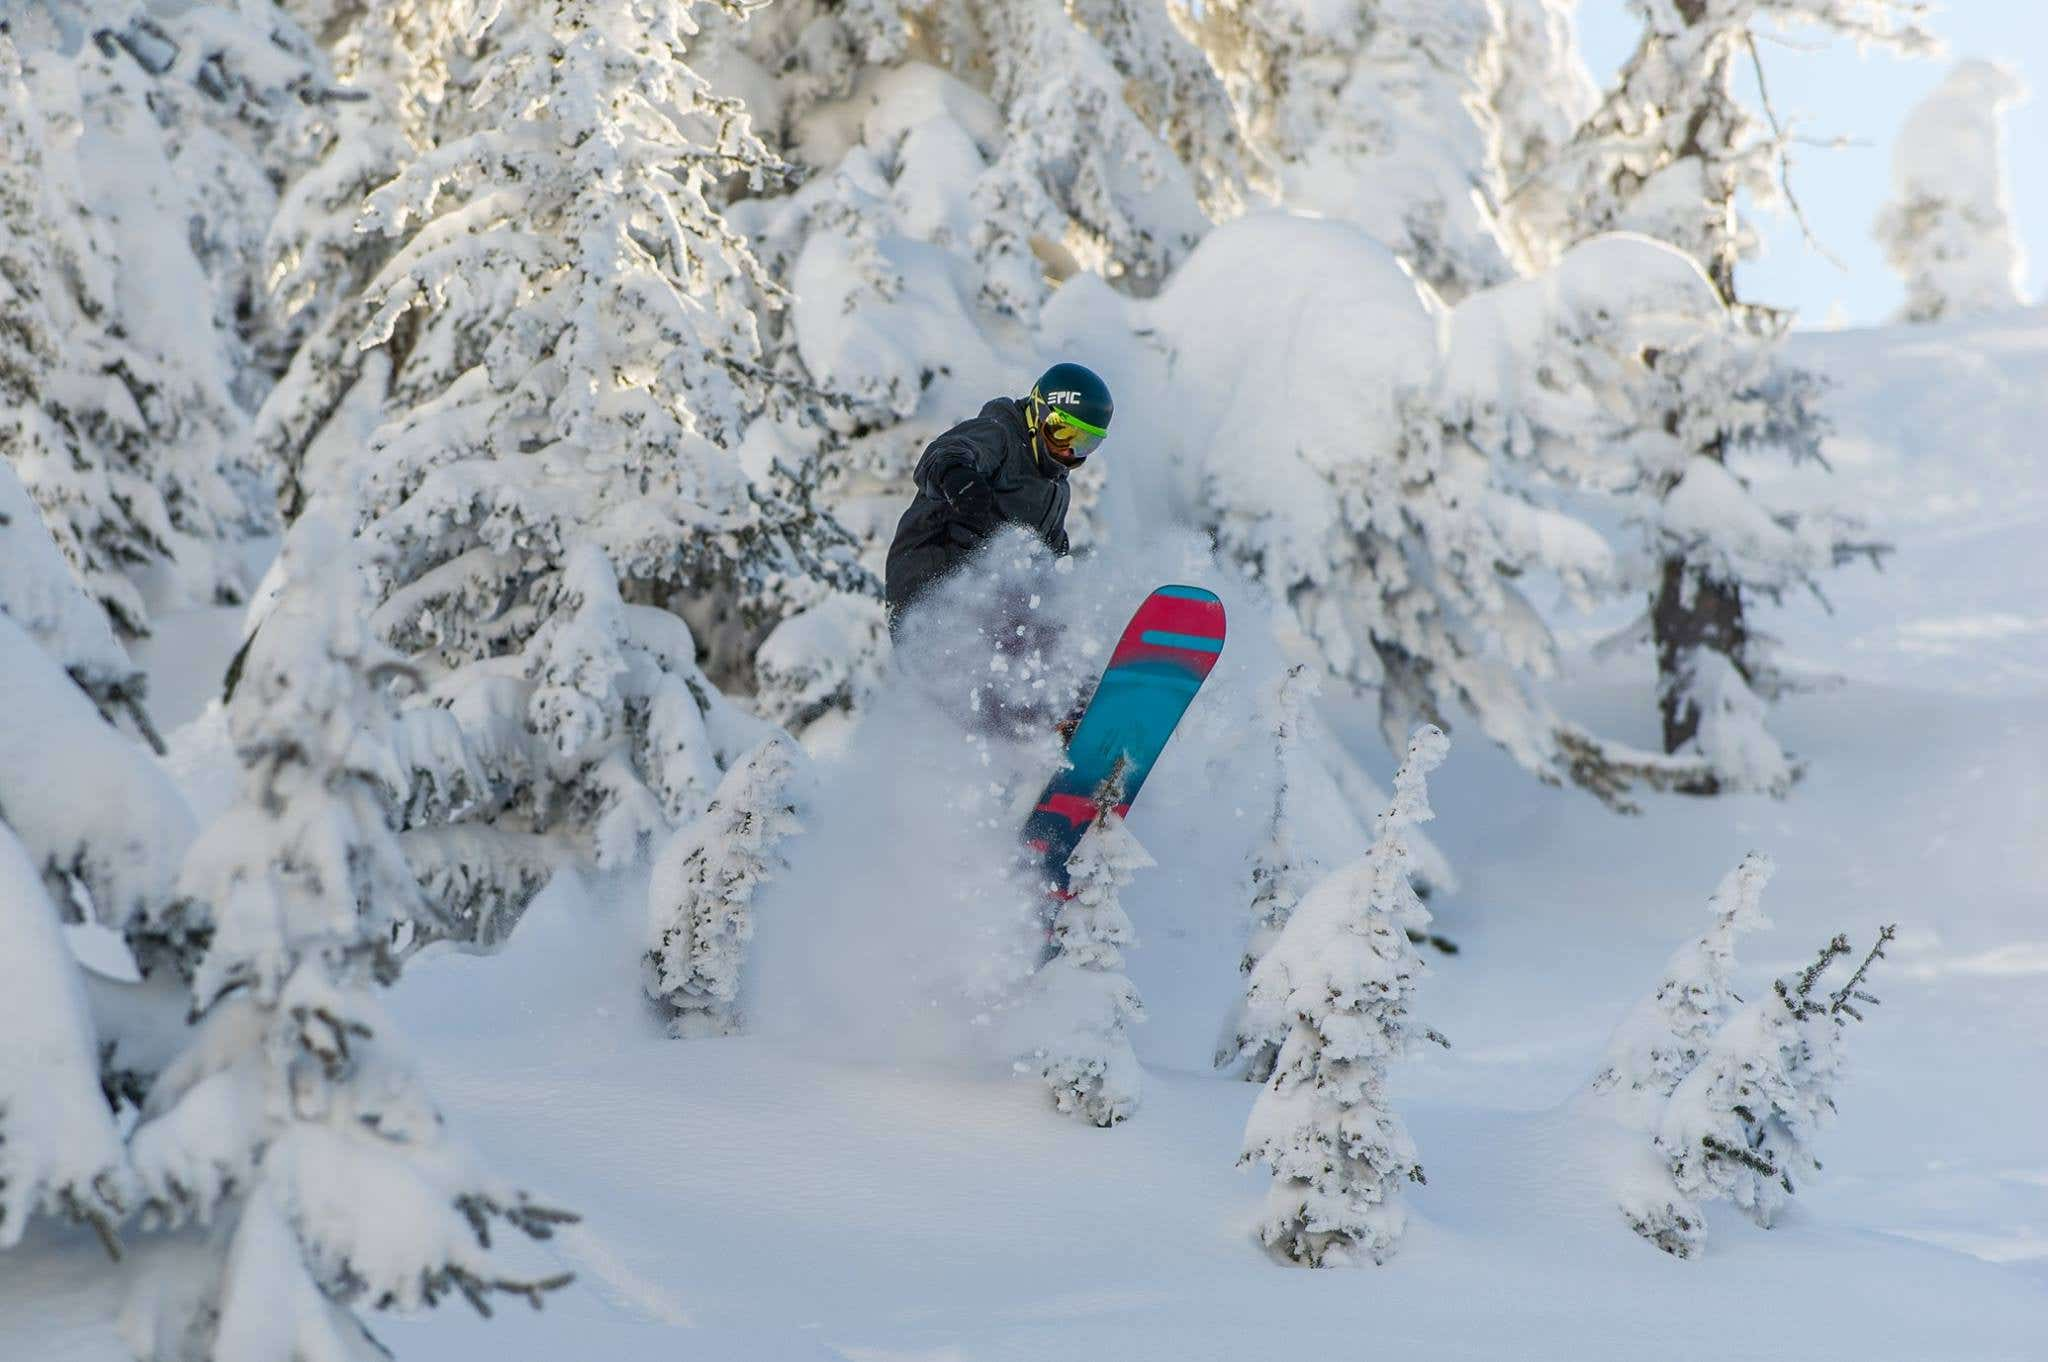 snowboard workouts, learn to snowboard online, snowboard fit, snowboarding for beginners